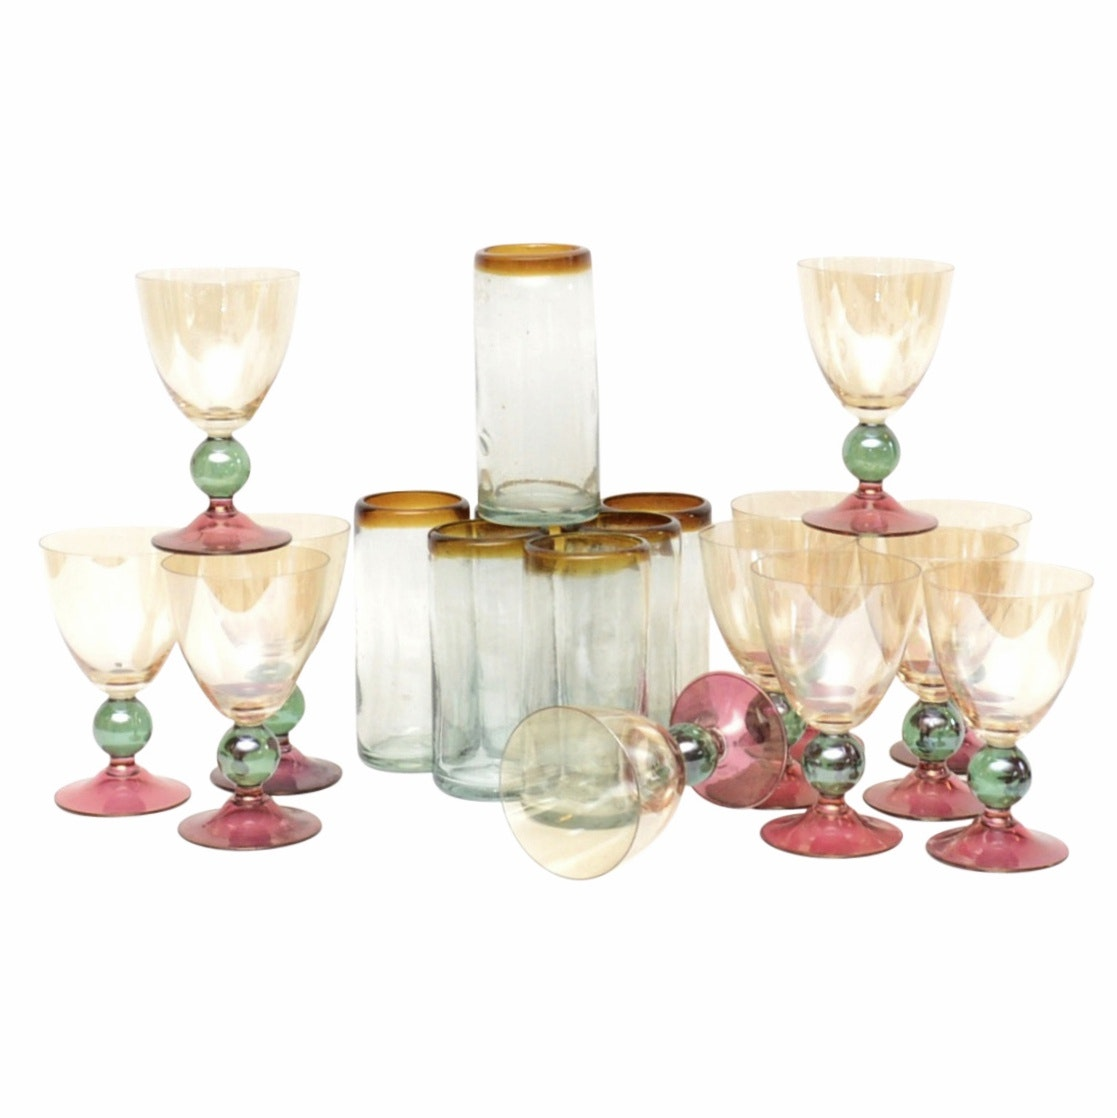 Stemware and Hand-Blown Highball Glasses in Amber Hues